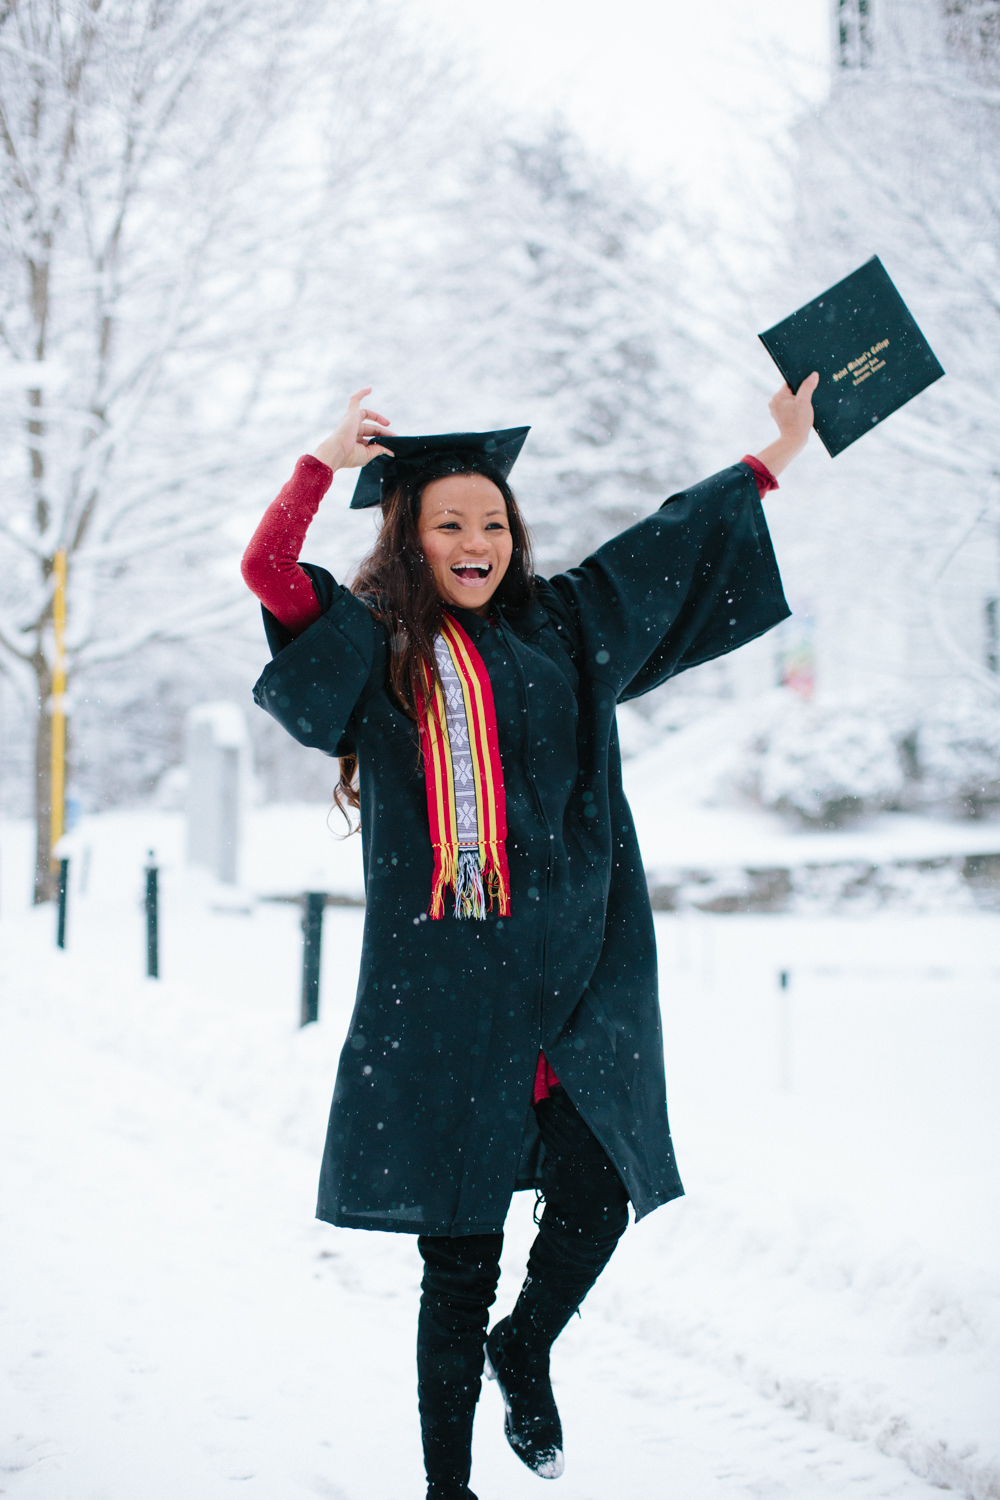 Rania, wearing a cap and gown, dancing in the snow with her diploma celebrating graduation